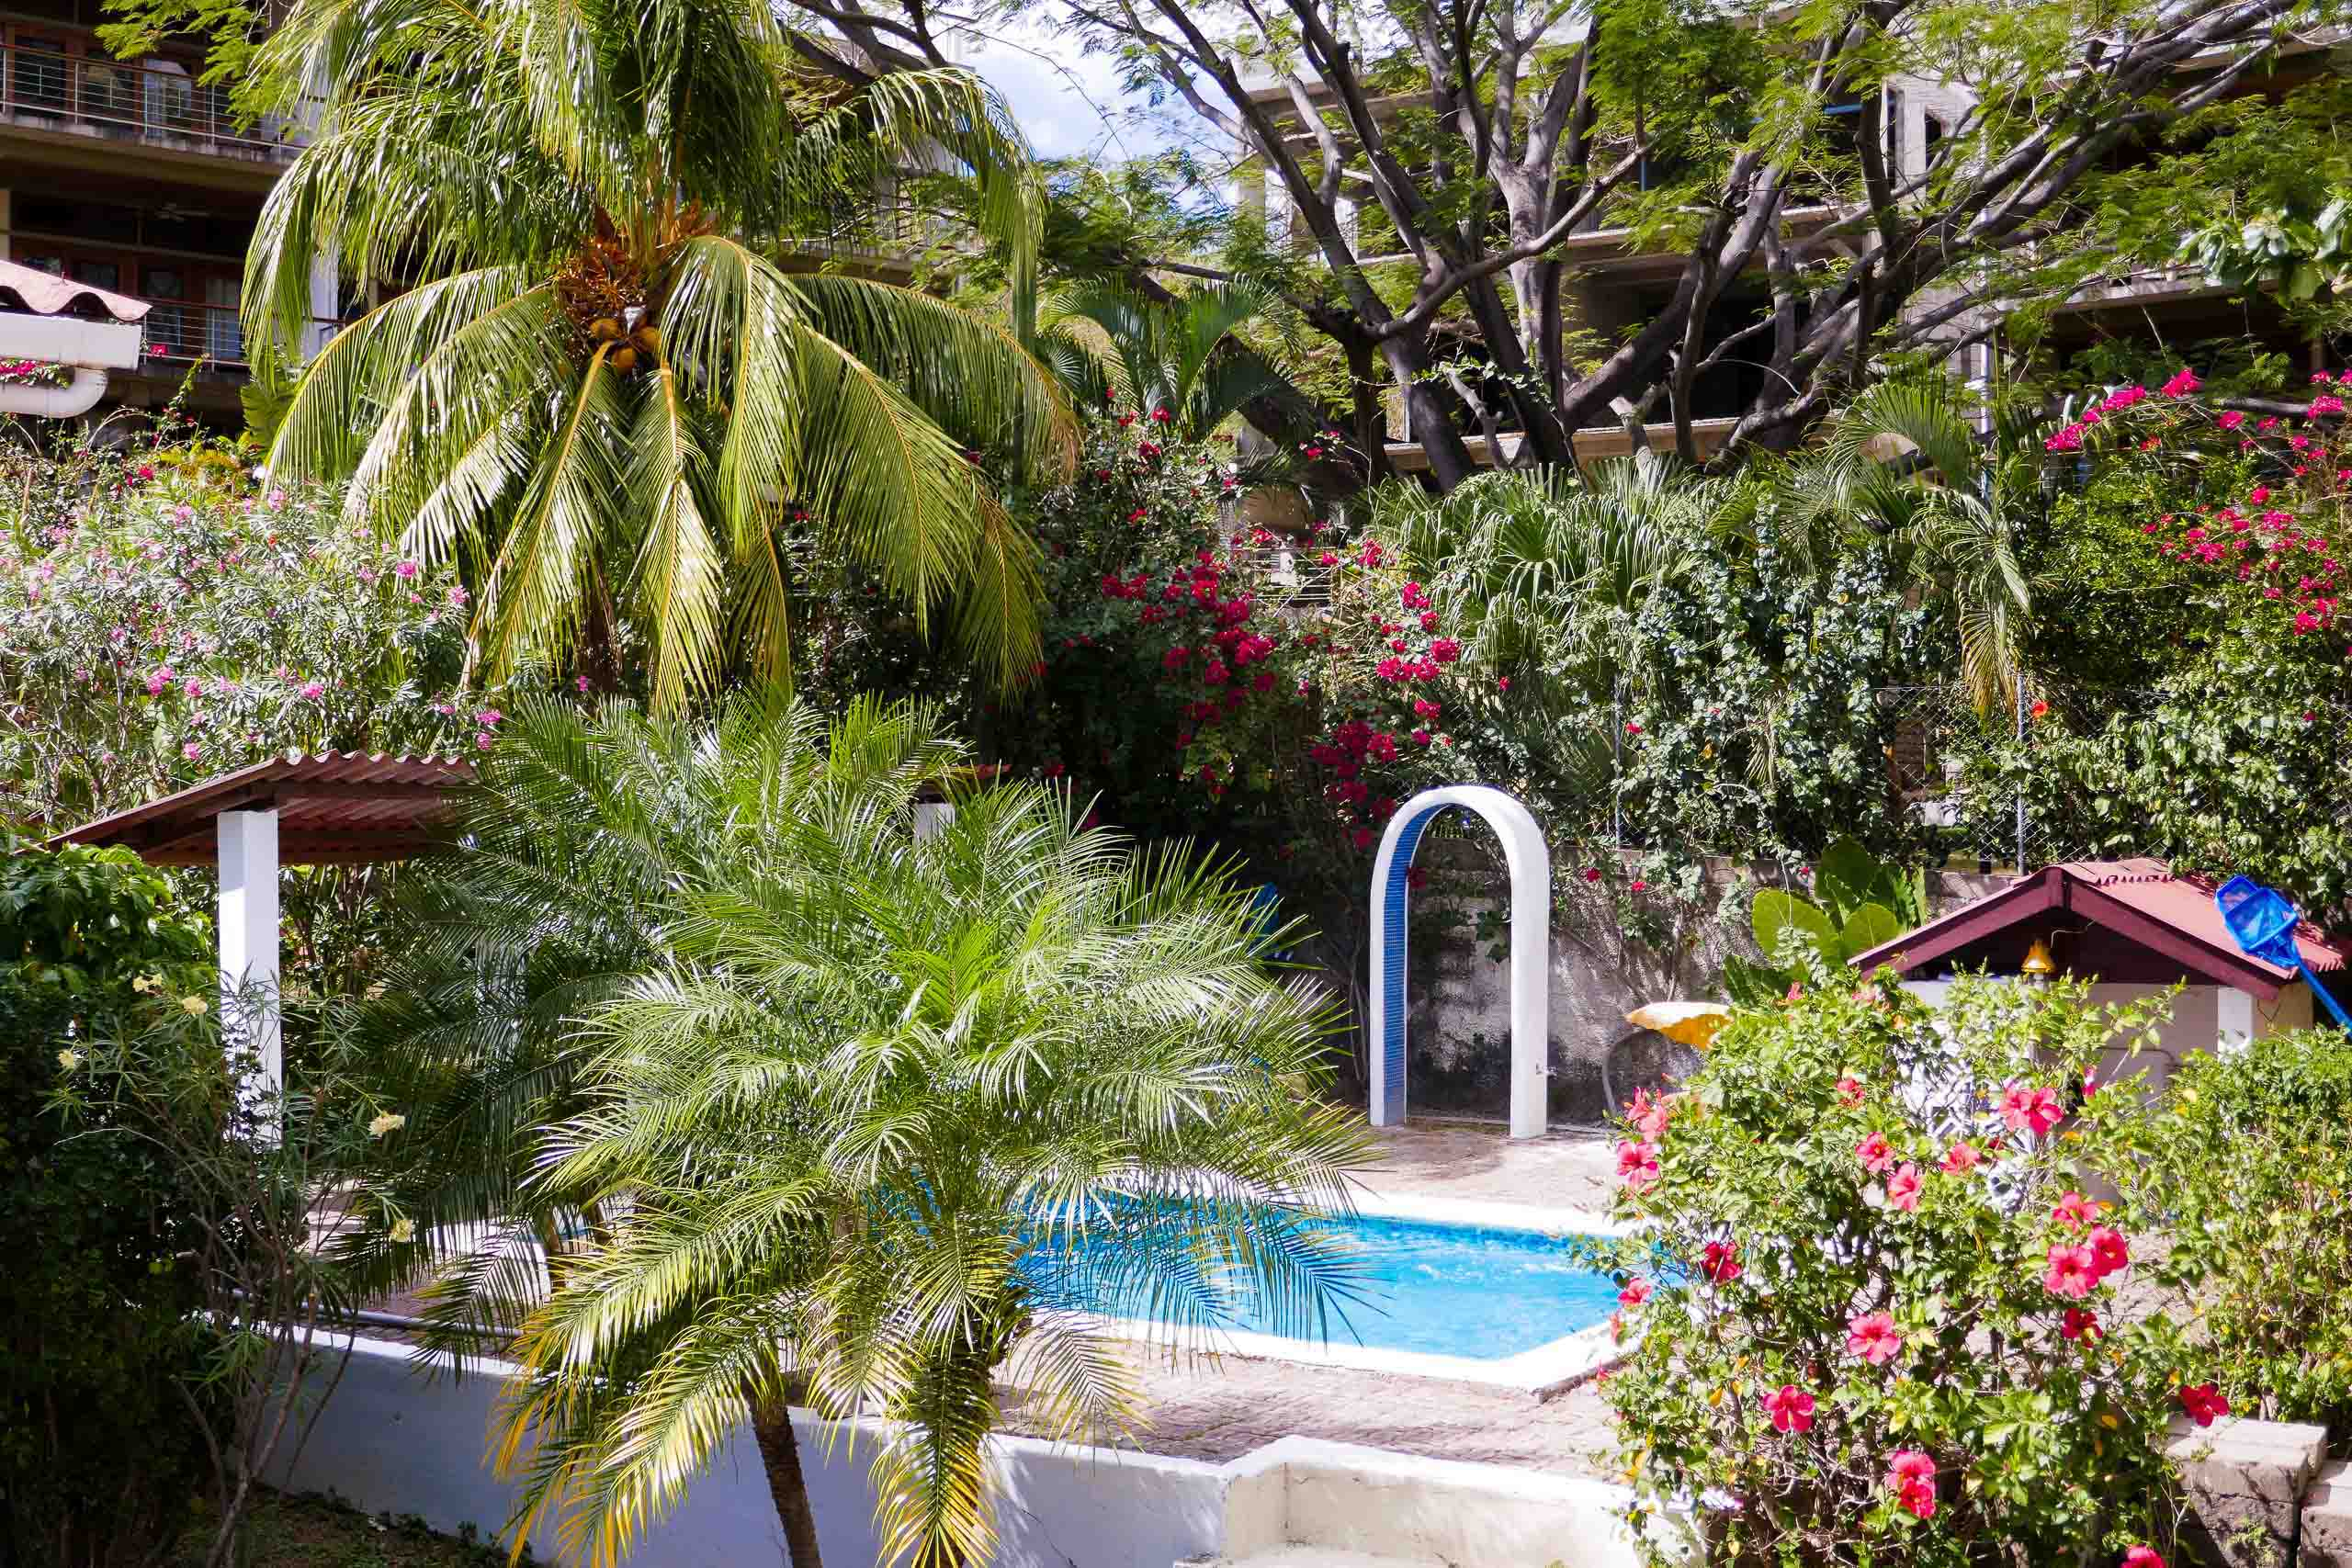 Casa Oro Group El-Pacifico-Hotel-San-Juan-del-Sur-Nicaragua-Talanguera-Eco-Hotel-Swimming-Pool-Trees-Flower-Coconut-Nature Accommodations